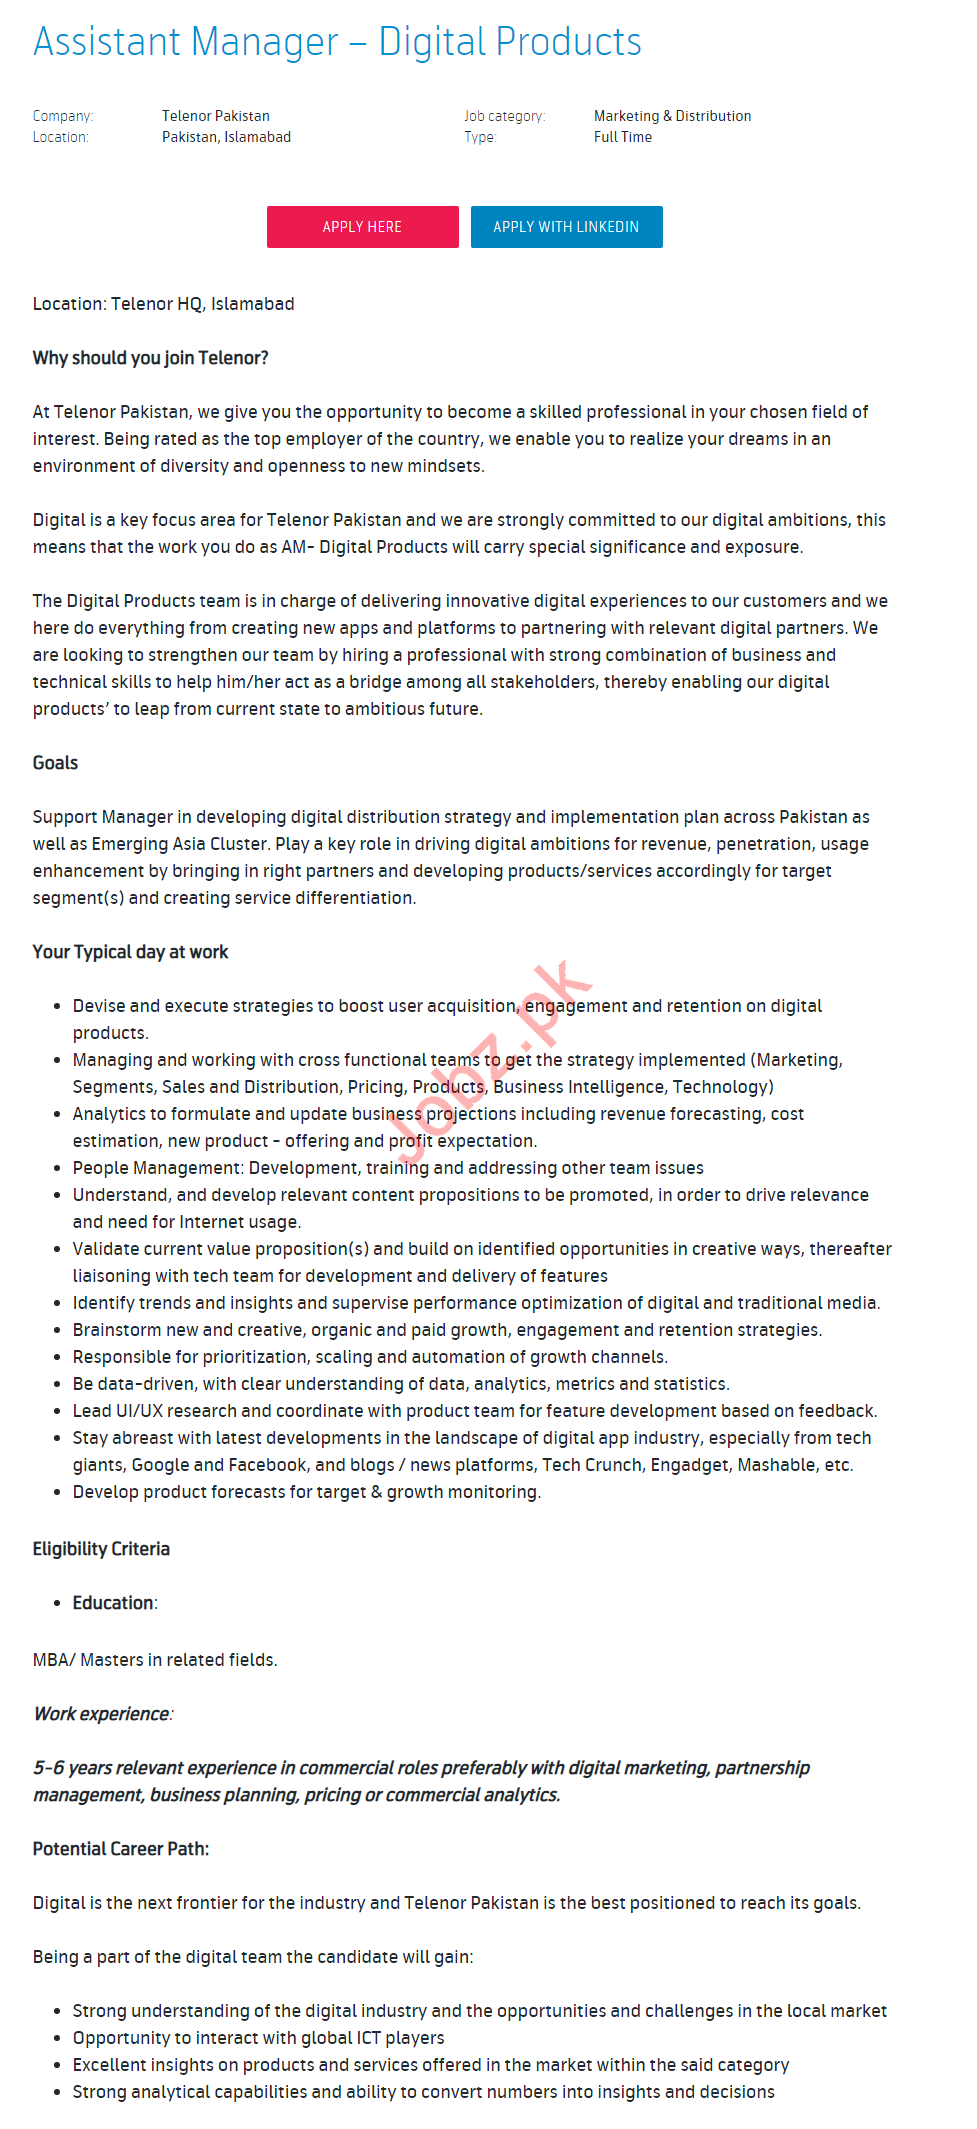 Assistant Manager Digital Products Job 2019 in Islamabad